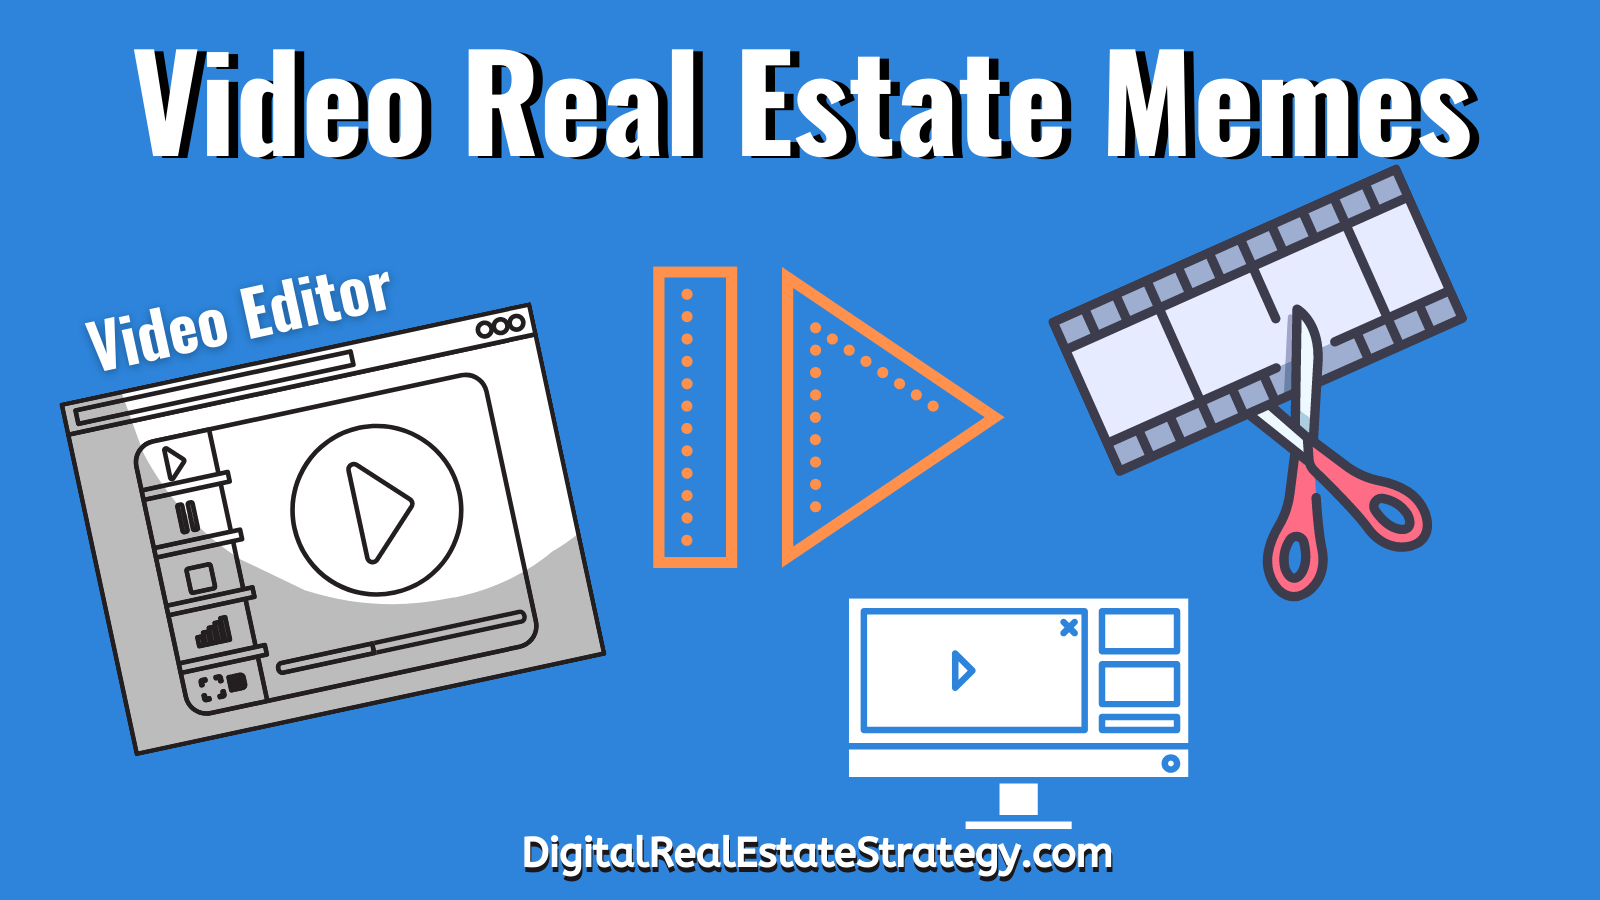 Making Real Estate Video Memes - Jerome Lewis - eXp Realty - Philadelphia - Real Estate Video Memes